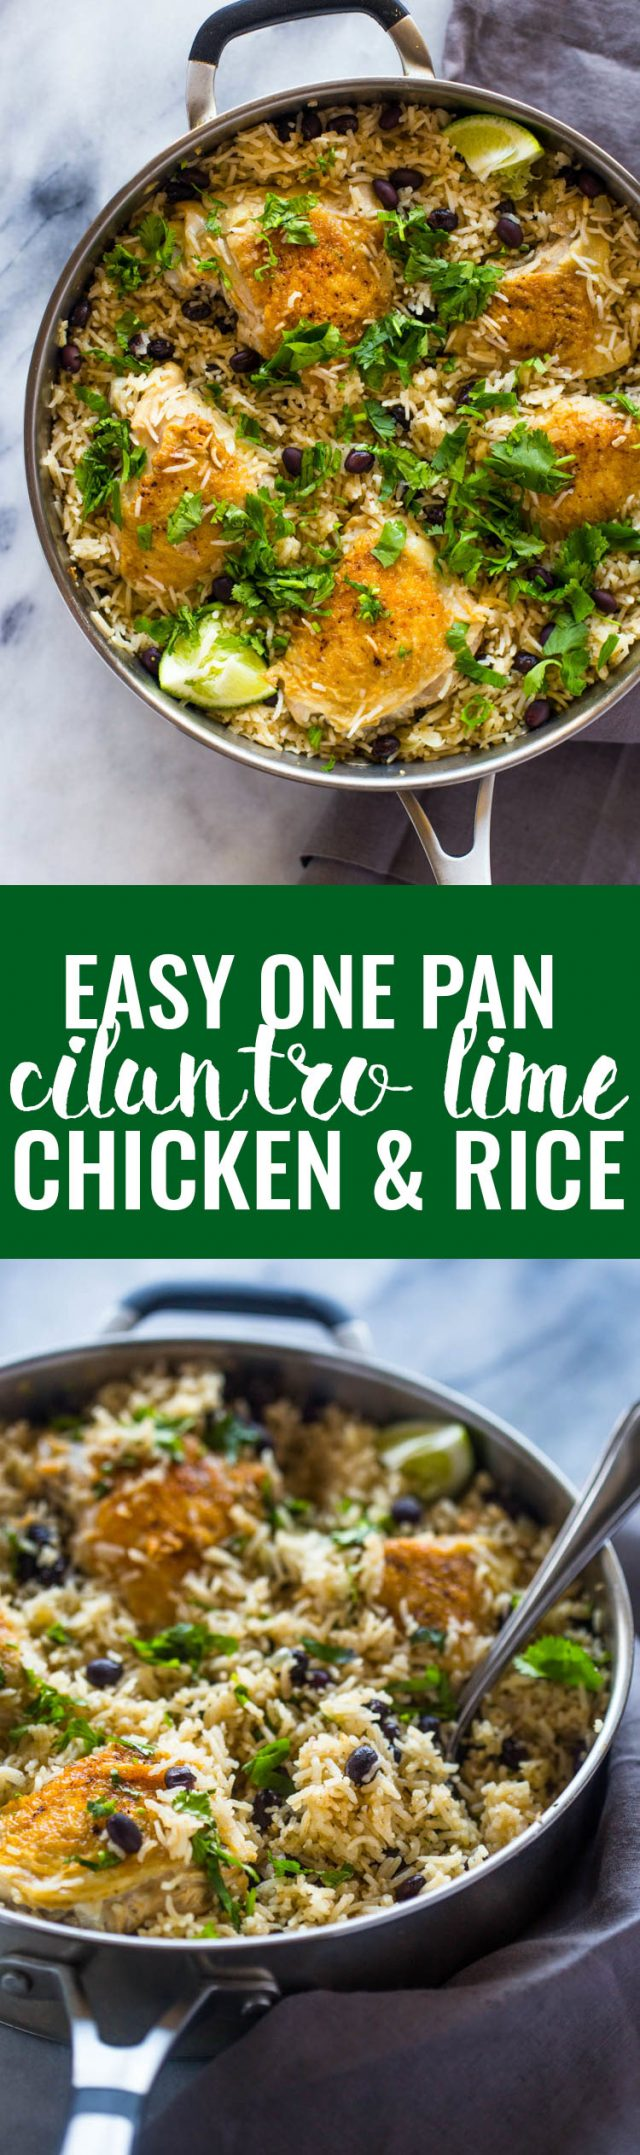 One Pan Cilantro Lime Chicken and Rice